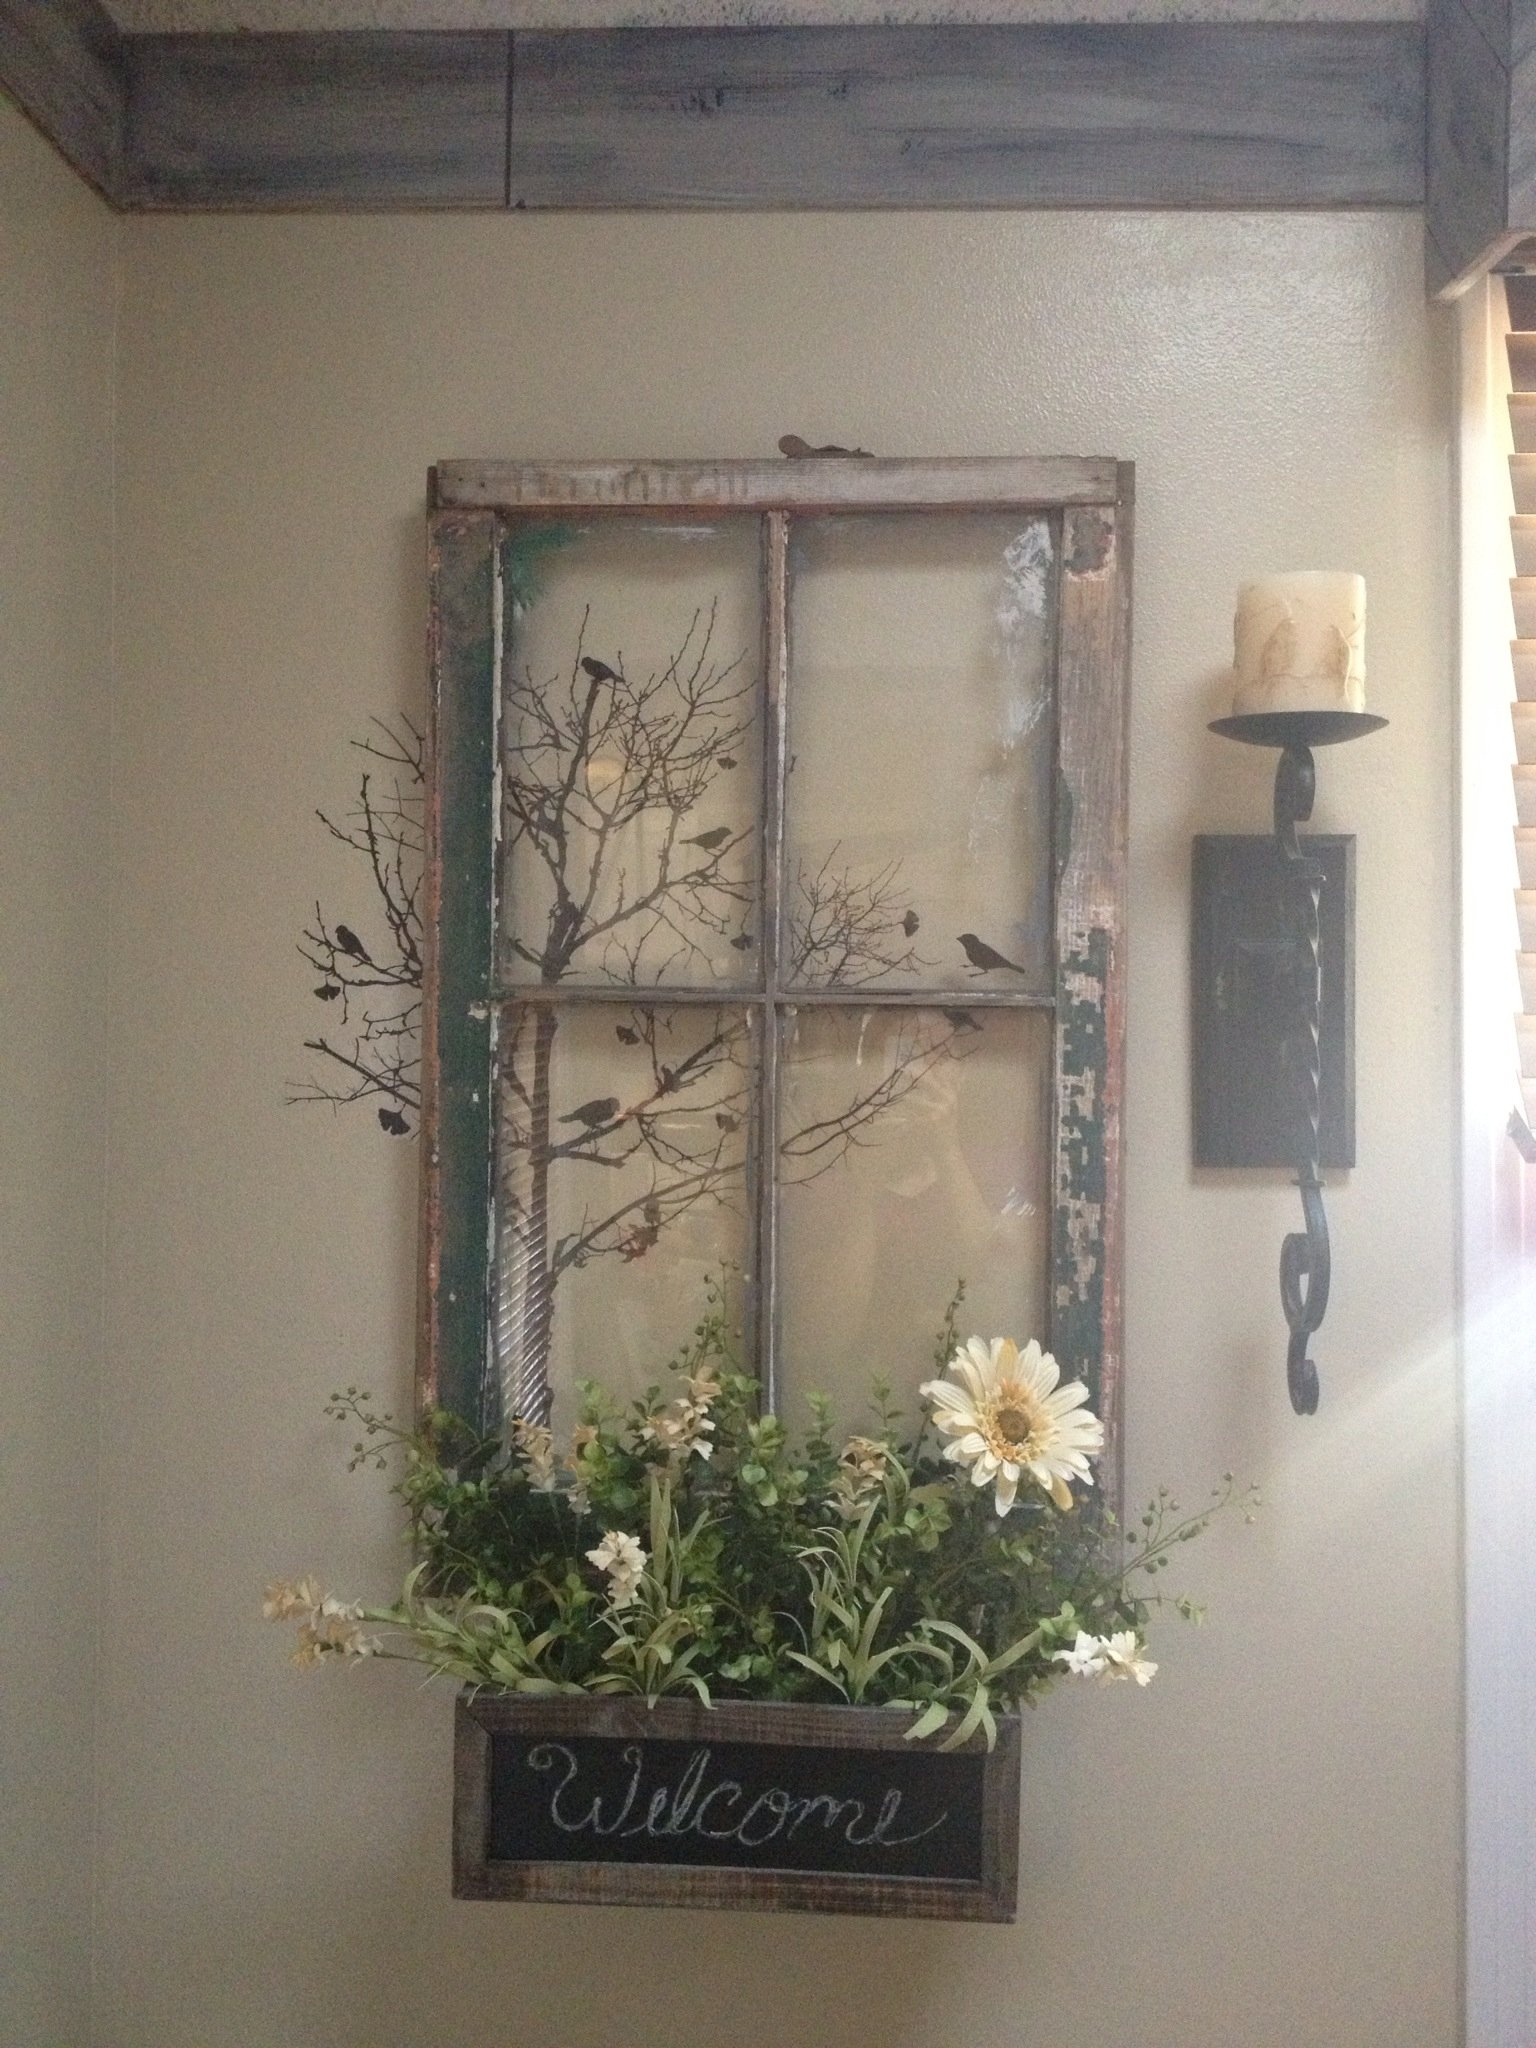 10 Famous Old Window Frame Decorating Ideas my vision of an old window repurposed except with a mirror instead 2021